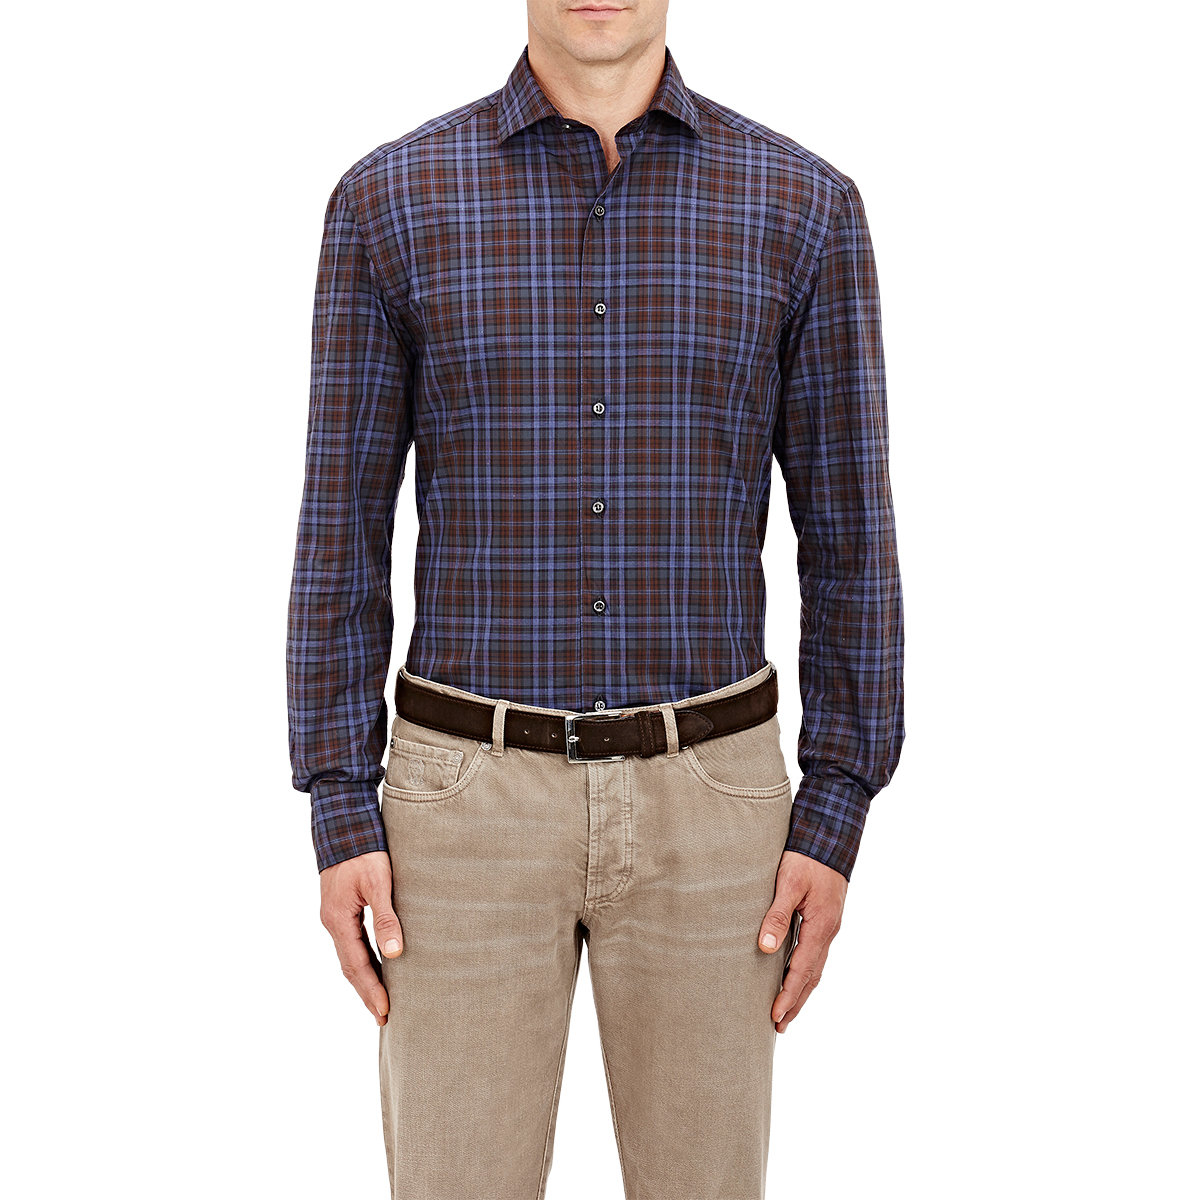 Lyst barneys new york men 39 s plaid dress shirt in blue for New york and company dress shirts